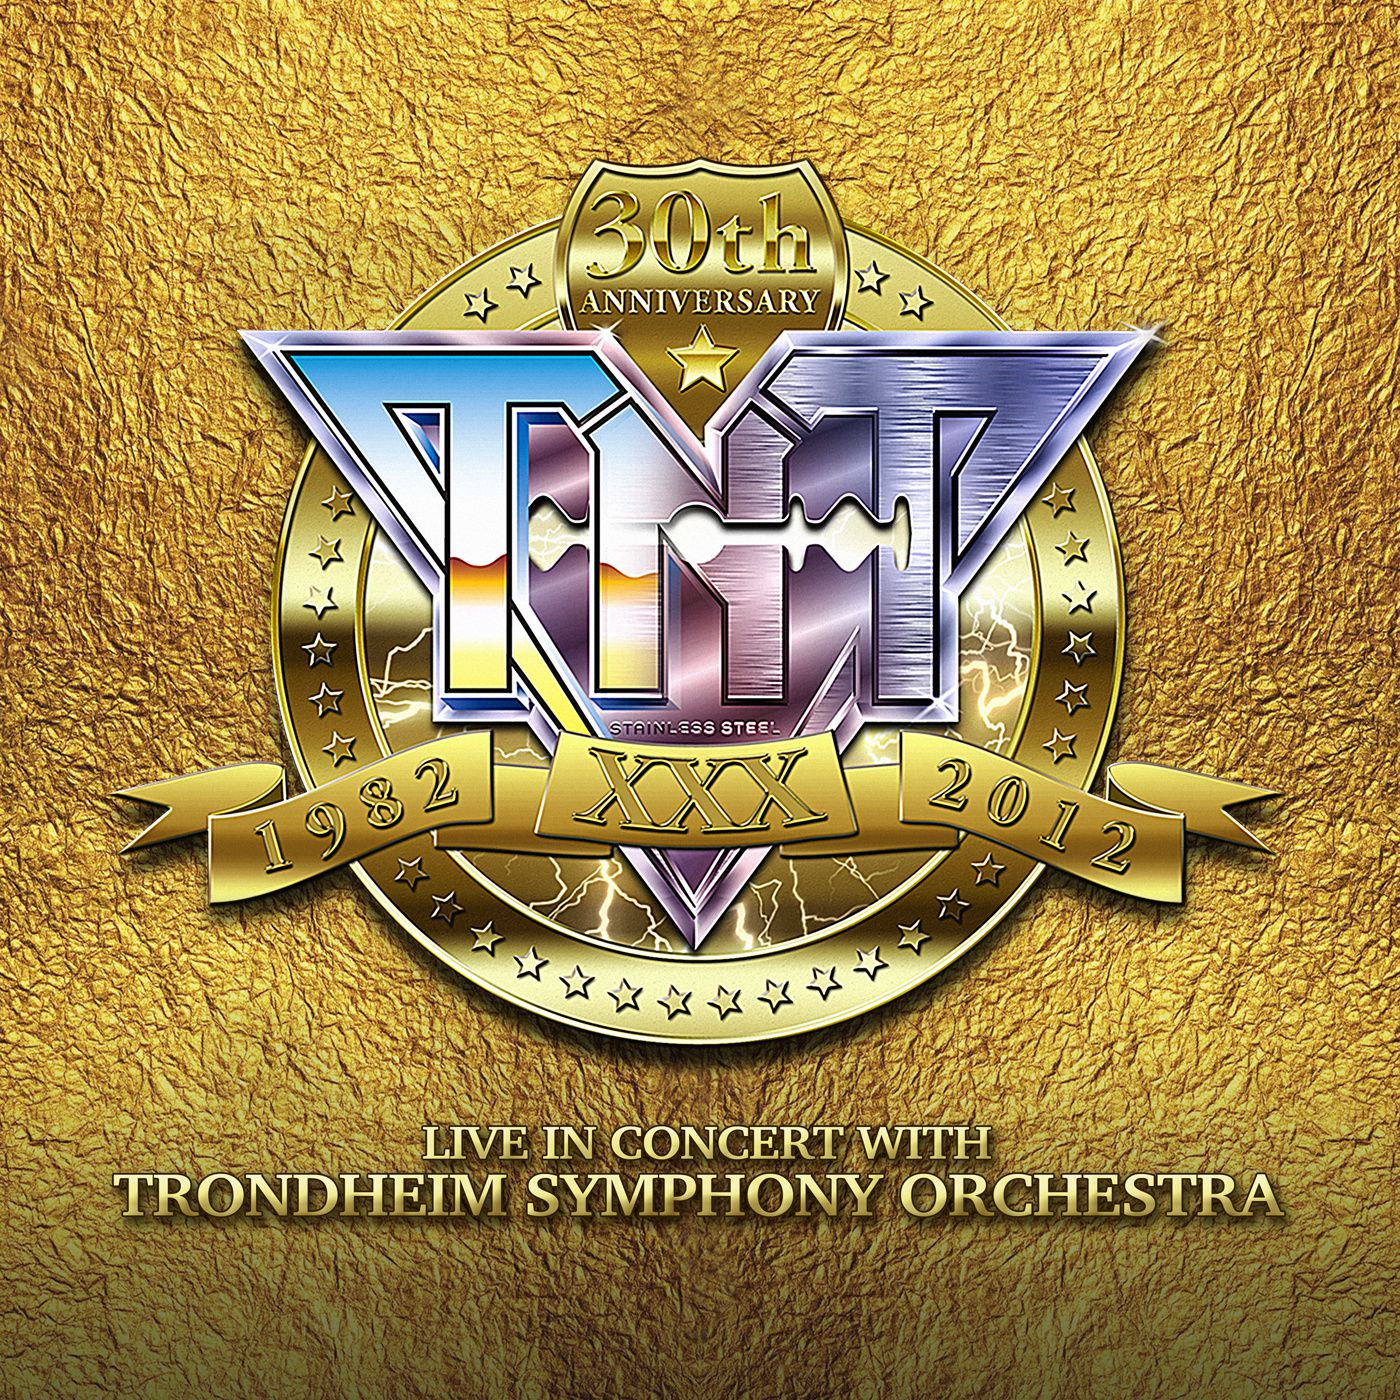 New live recording from TNT